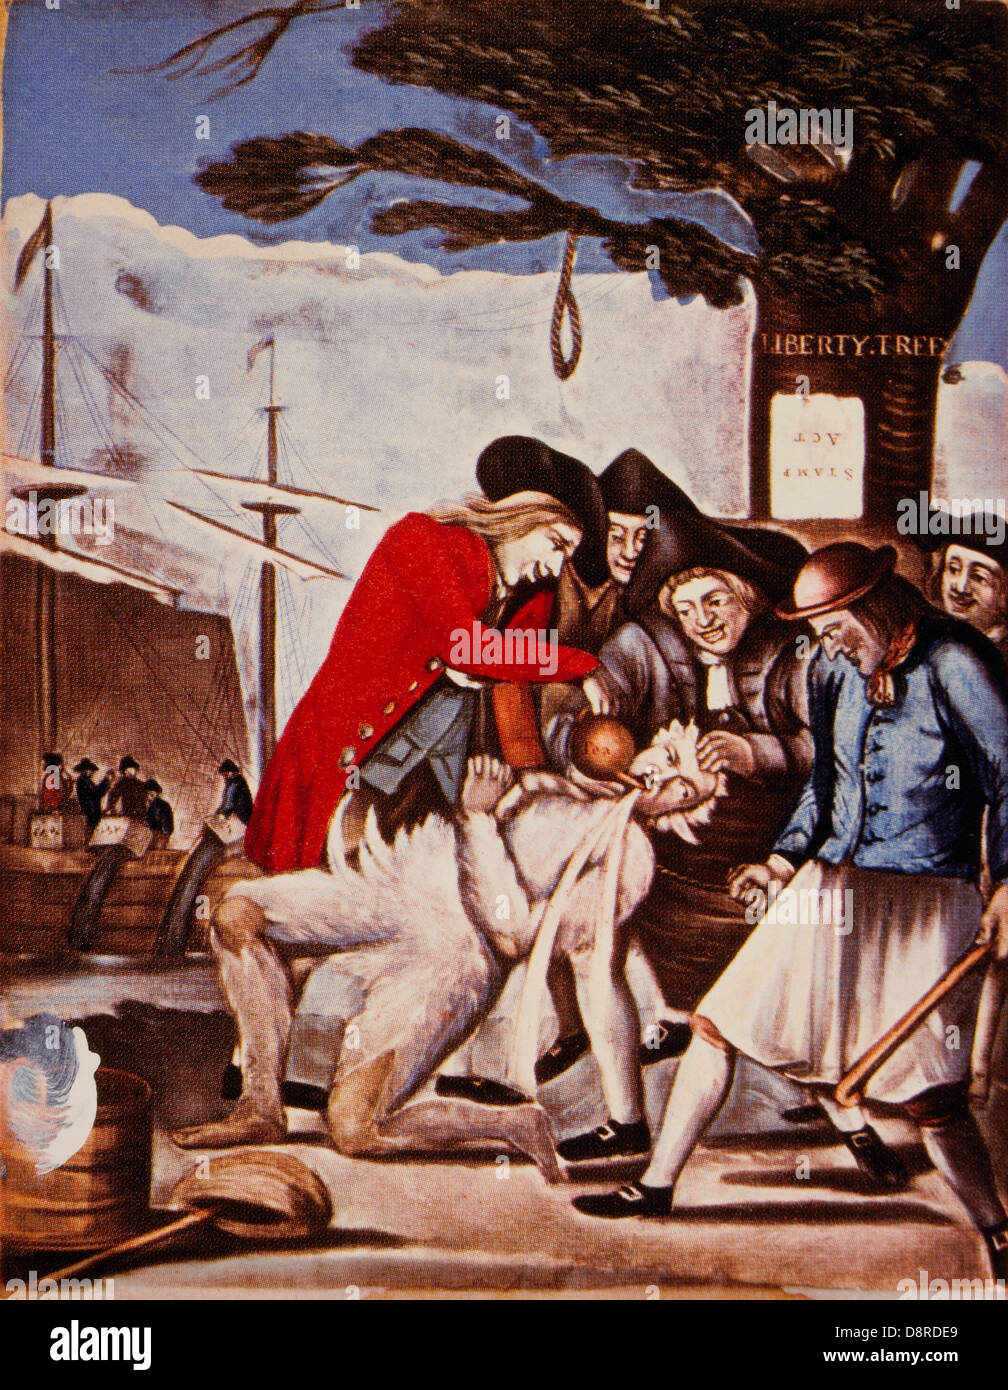 The Bostonians Paying the Excise-man, or Tarring and Feathering, 1774